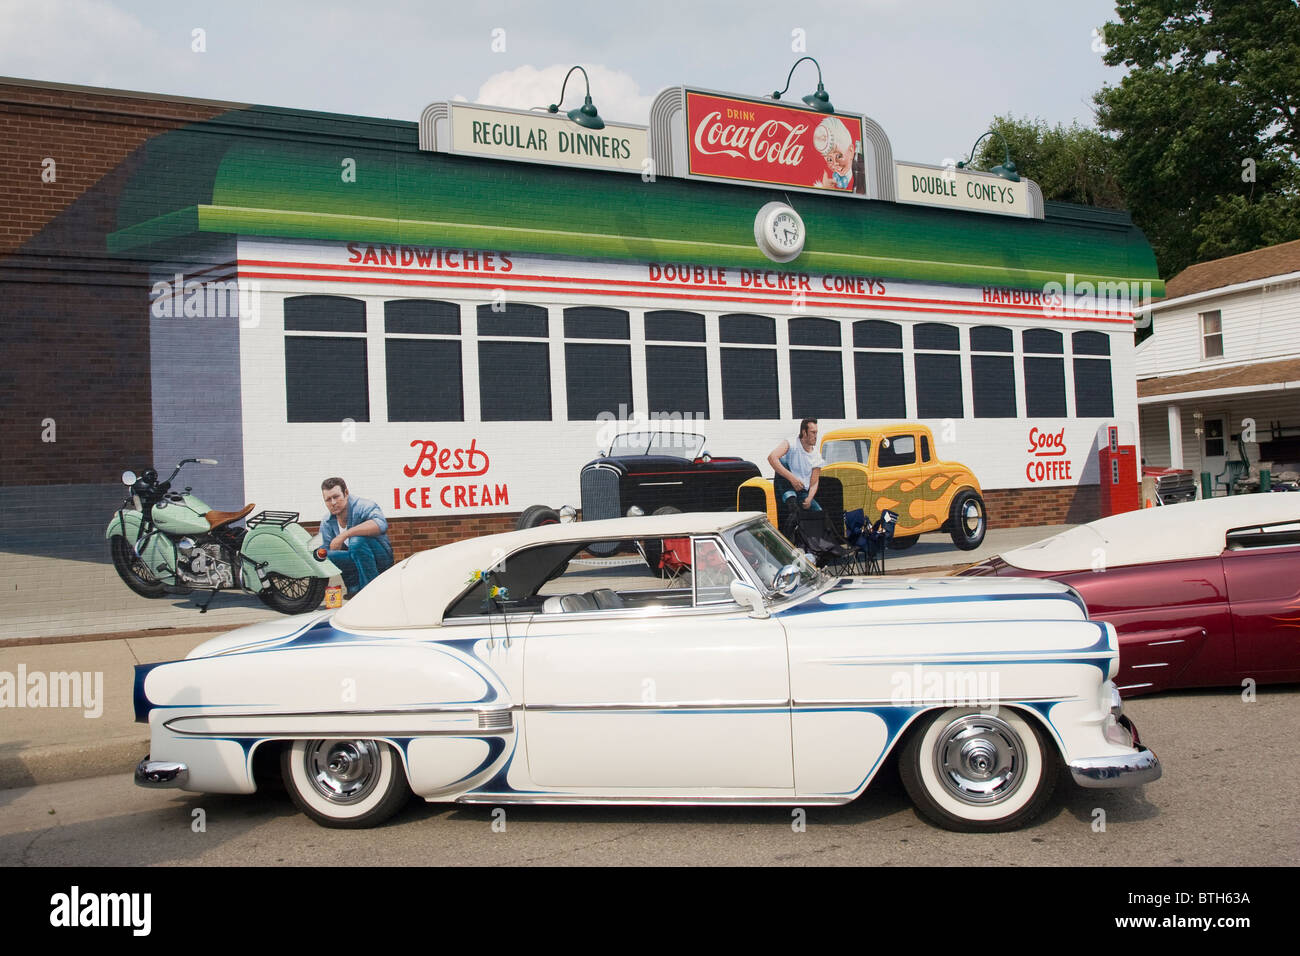 Auto 1954 Chevrolet At Franklin Ohio Usa Car Show Building With Painted Diner Mural And Coca Cola Sign